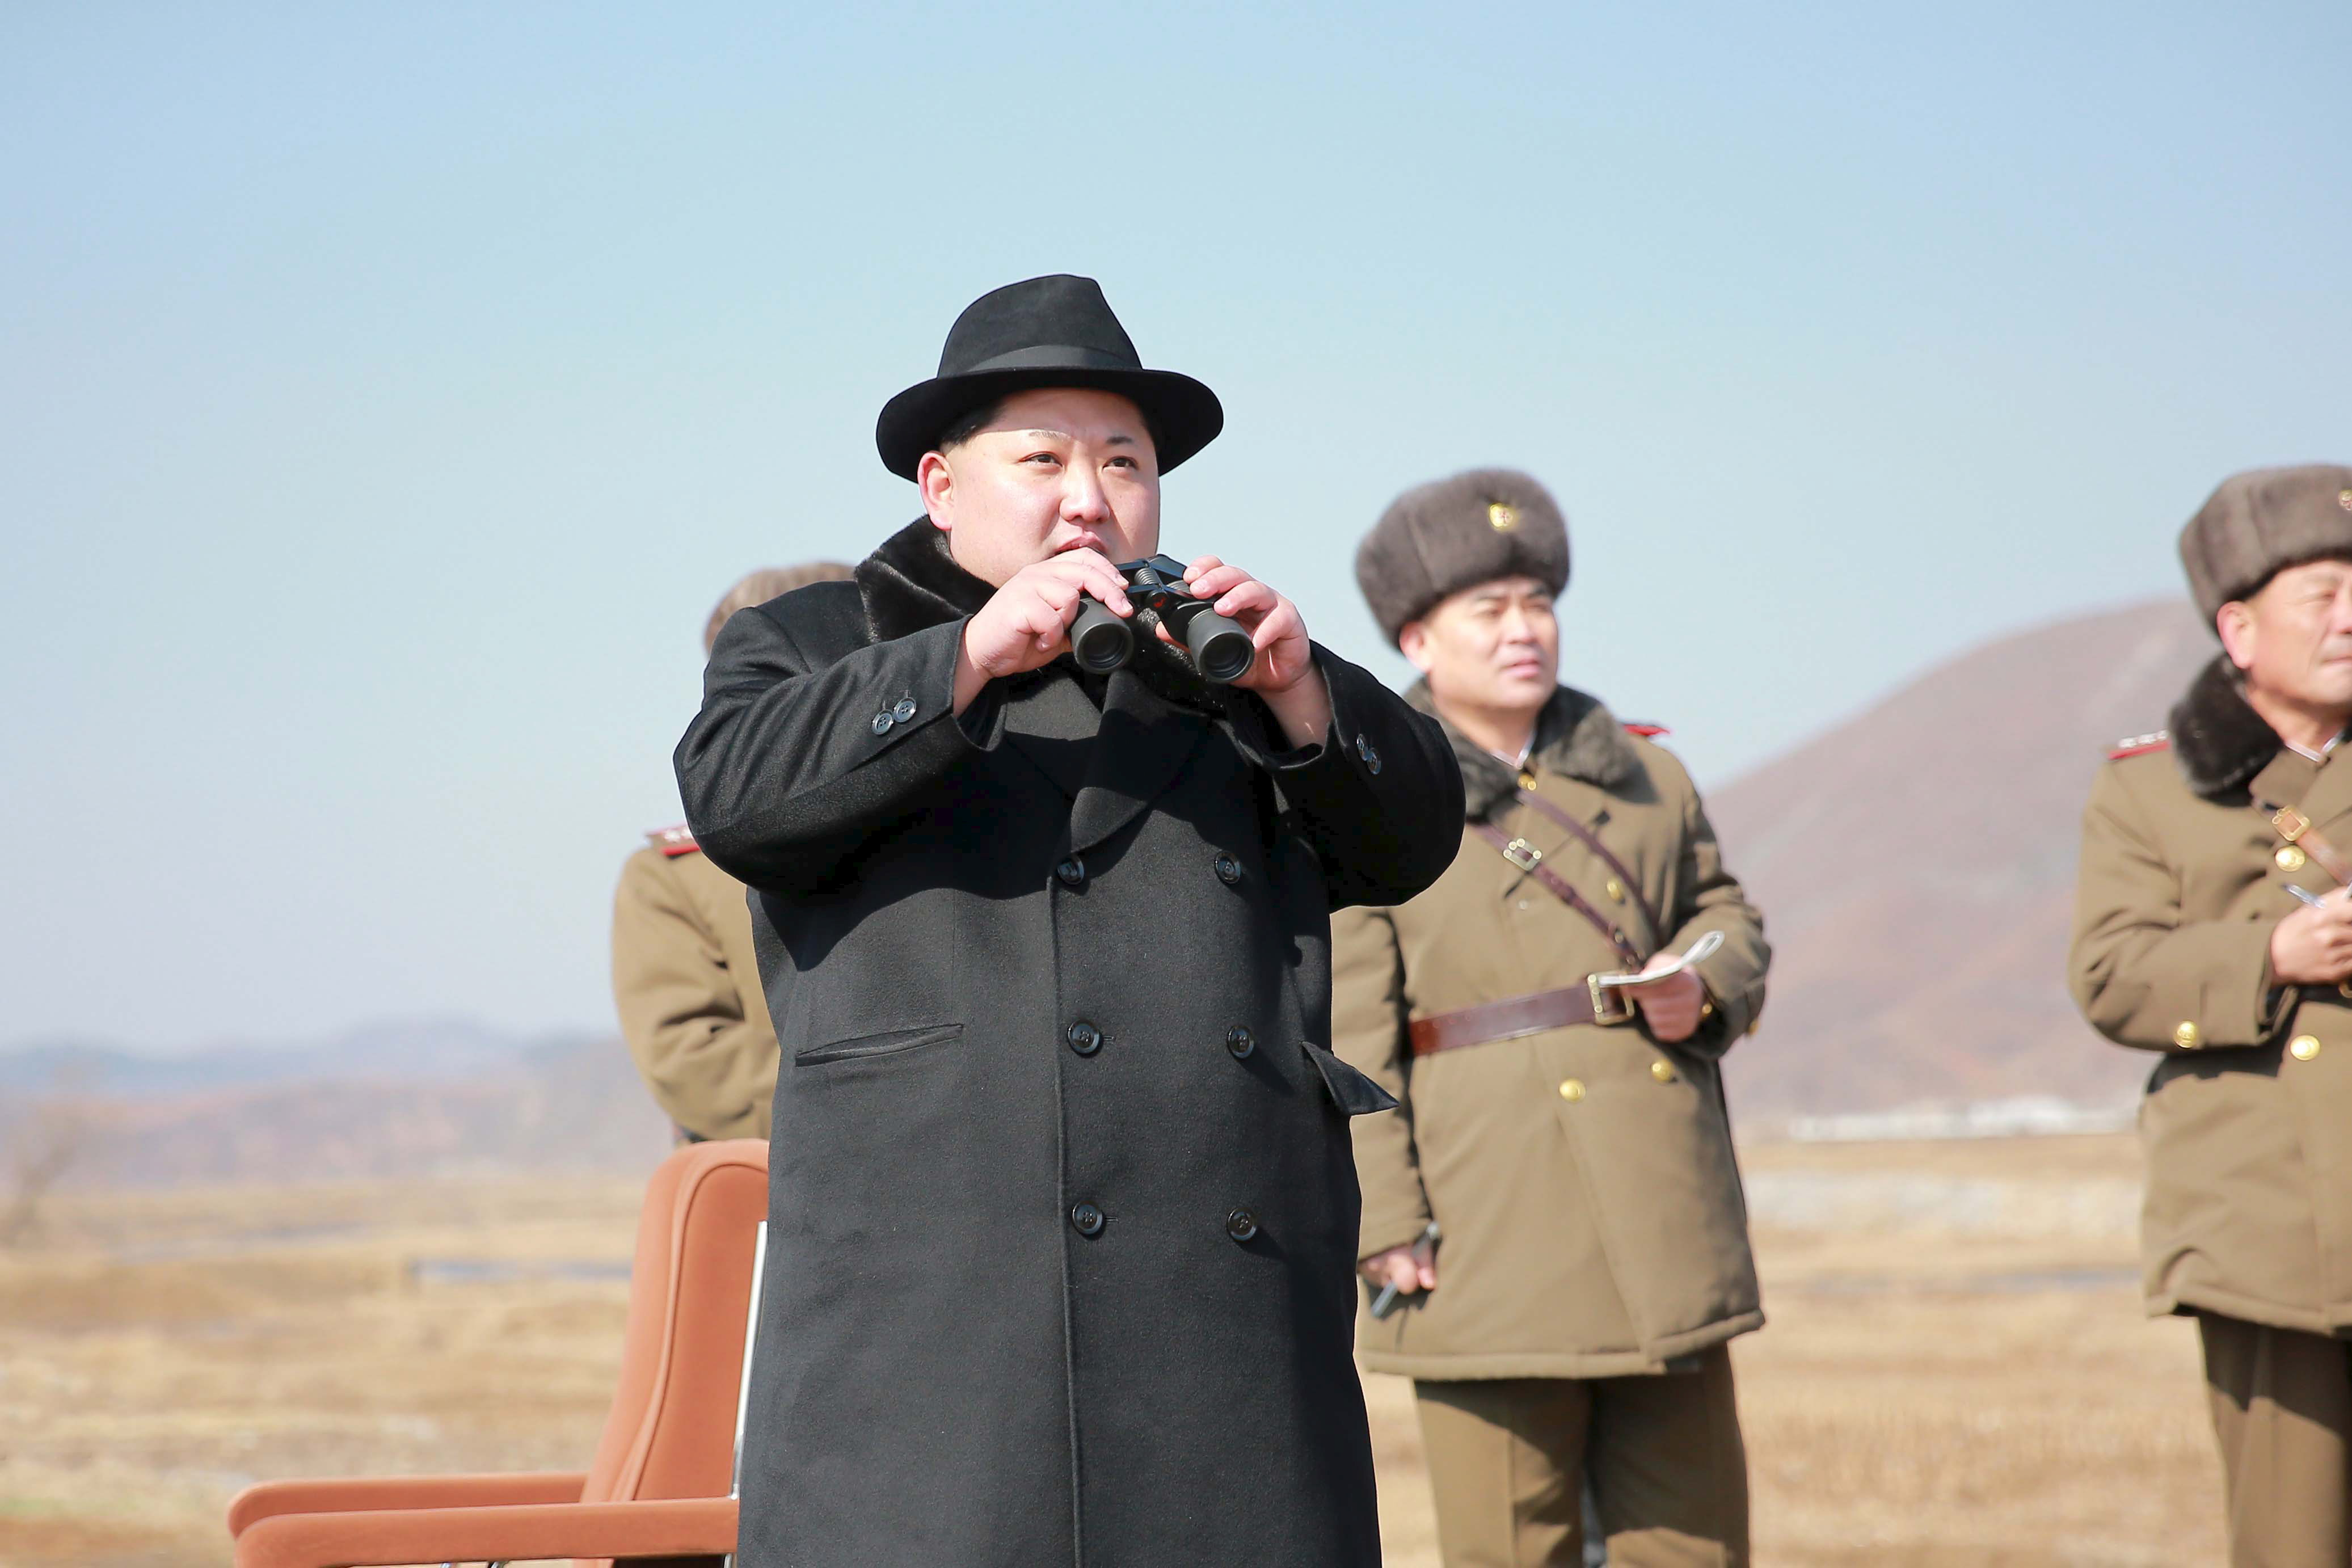 North Korean leader Kim Jong Un inspects a flight drill of fighter pilots from the Korean People's Army's (KPA) Air and Anti-Air Force, in this undated photo released by North Korea's Korean Central News Agency (KCNA) in Pyongyang on February 21, 2016. REUTERS/KCNA ATTENTION EDITORS - THIS PICTURE WAS PROVIDED BY A THIRD PARTY. REUTERS IS UNABLE TO INDEPENDENTLY VERIFY THE AUTHENTICITY, CONTENT, LOCATION OR DATE OF THIS IMAGE. FOR EDITORIAL USE ONLY. NOT FOR SALE FOR MARKETING OR ADVERTISING CAMPAIGNS. THIS PICTURE IS DISTRIBUTED EXACTLY AS RECEIVED BY REUTERS, AS A SERVICE TO CLIENTS. NO THIRD PARTY SALES. SOUTH KOREA OUT. NO COMMERCIAL OR EDITORIAL SALES IN SOUTH KOREA. - RTX27VMH